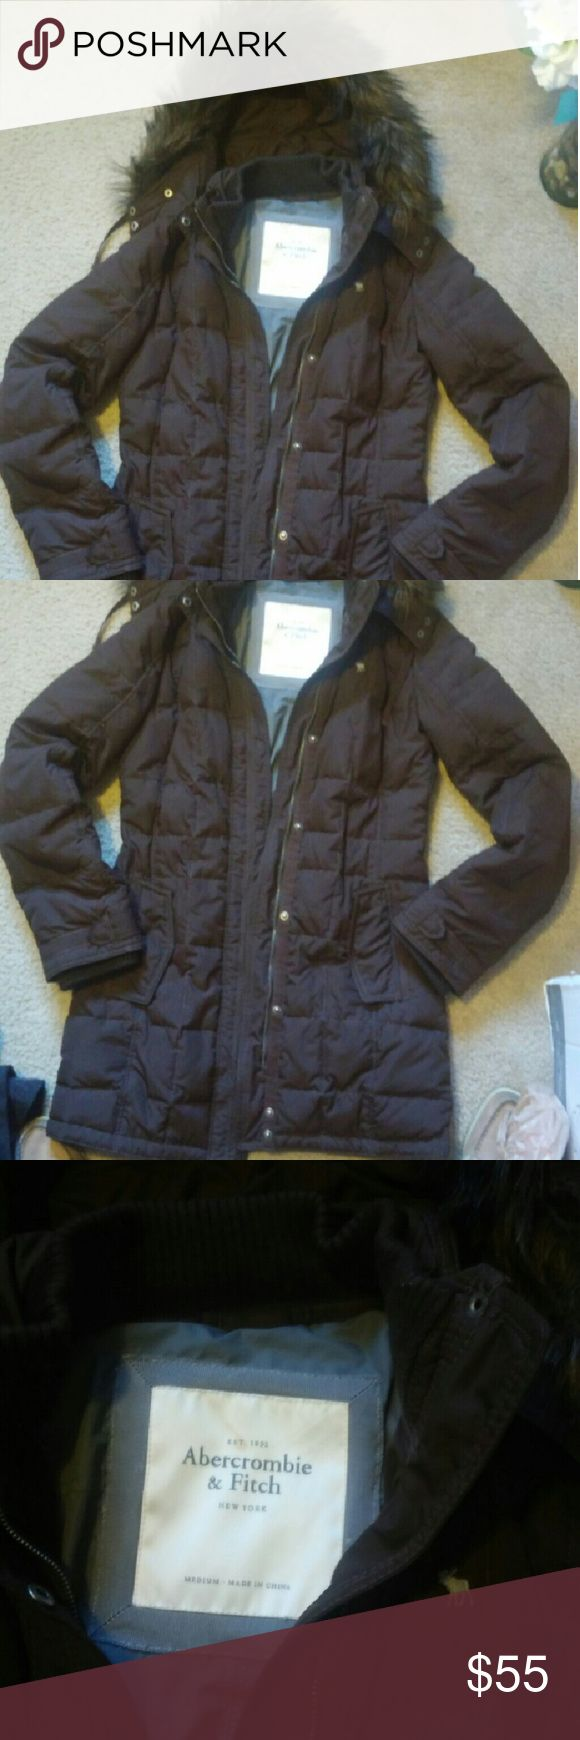 Abercrombie and Fitch puffer coat Abercrombie and Fitch puffer coat Great condition! No tears or stains Removable hoodie Removable faux fur on hoodie Abercrombie & Fitch Jackets & Coats